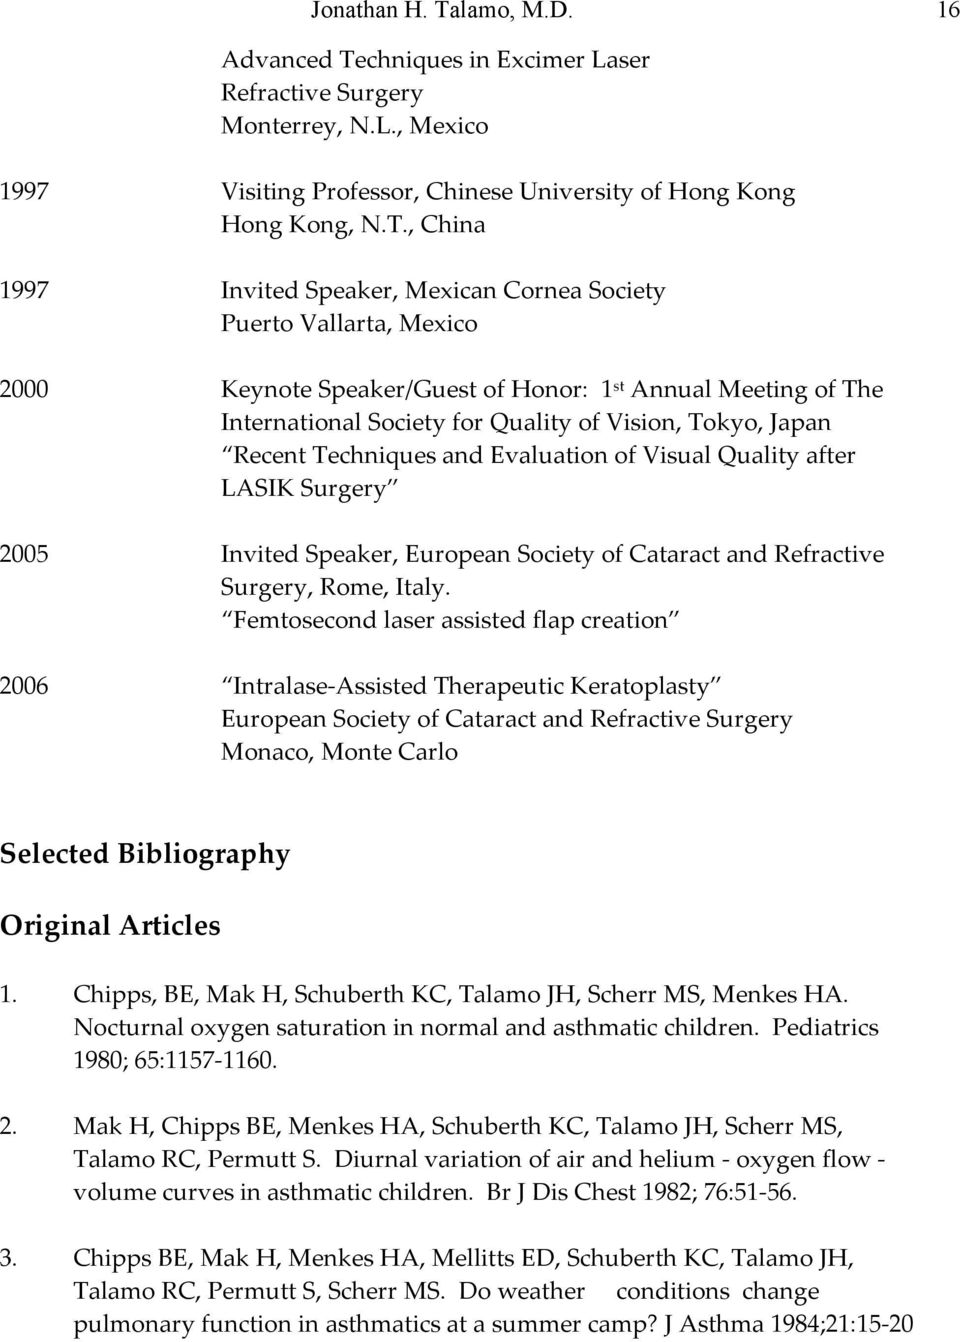 chniques in Excimer Laser Refractive Surgery Monterrey, N.L., Mexico 1997 Visiting Professor, Chinese University of Hong Kong Hong Kong, N.T.